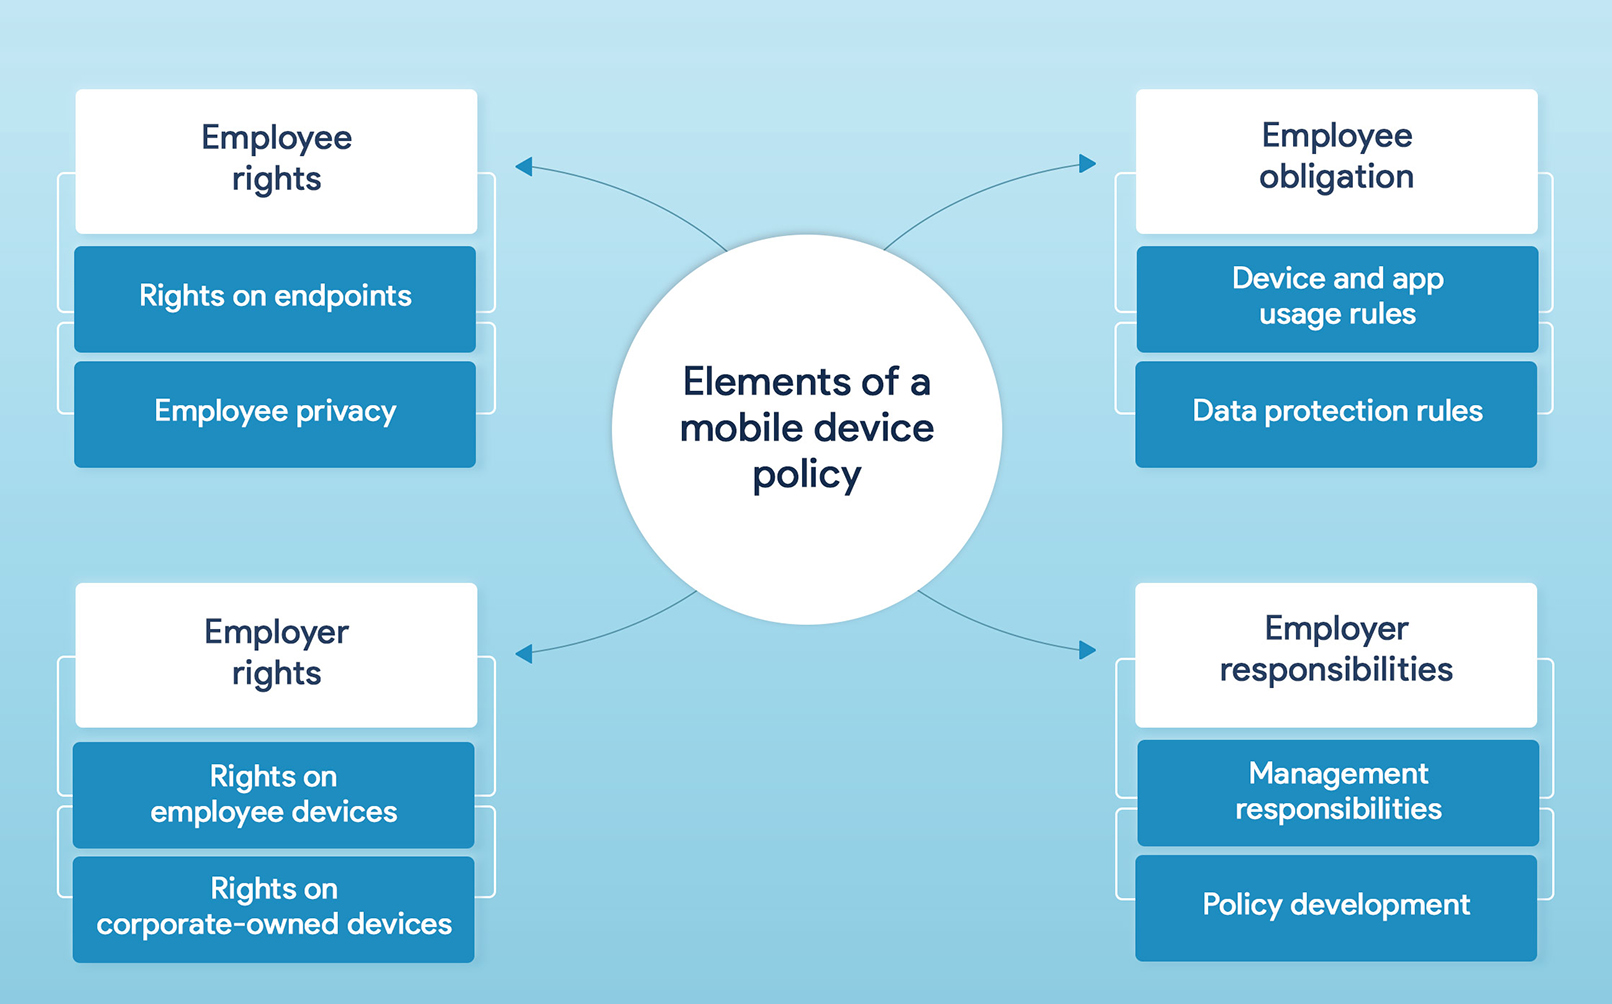 Elements of a successful mobile device policy